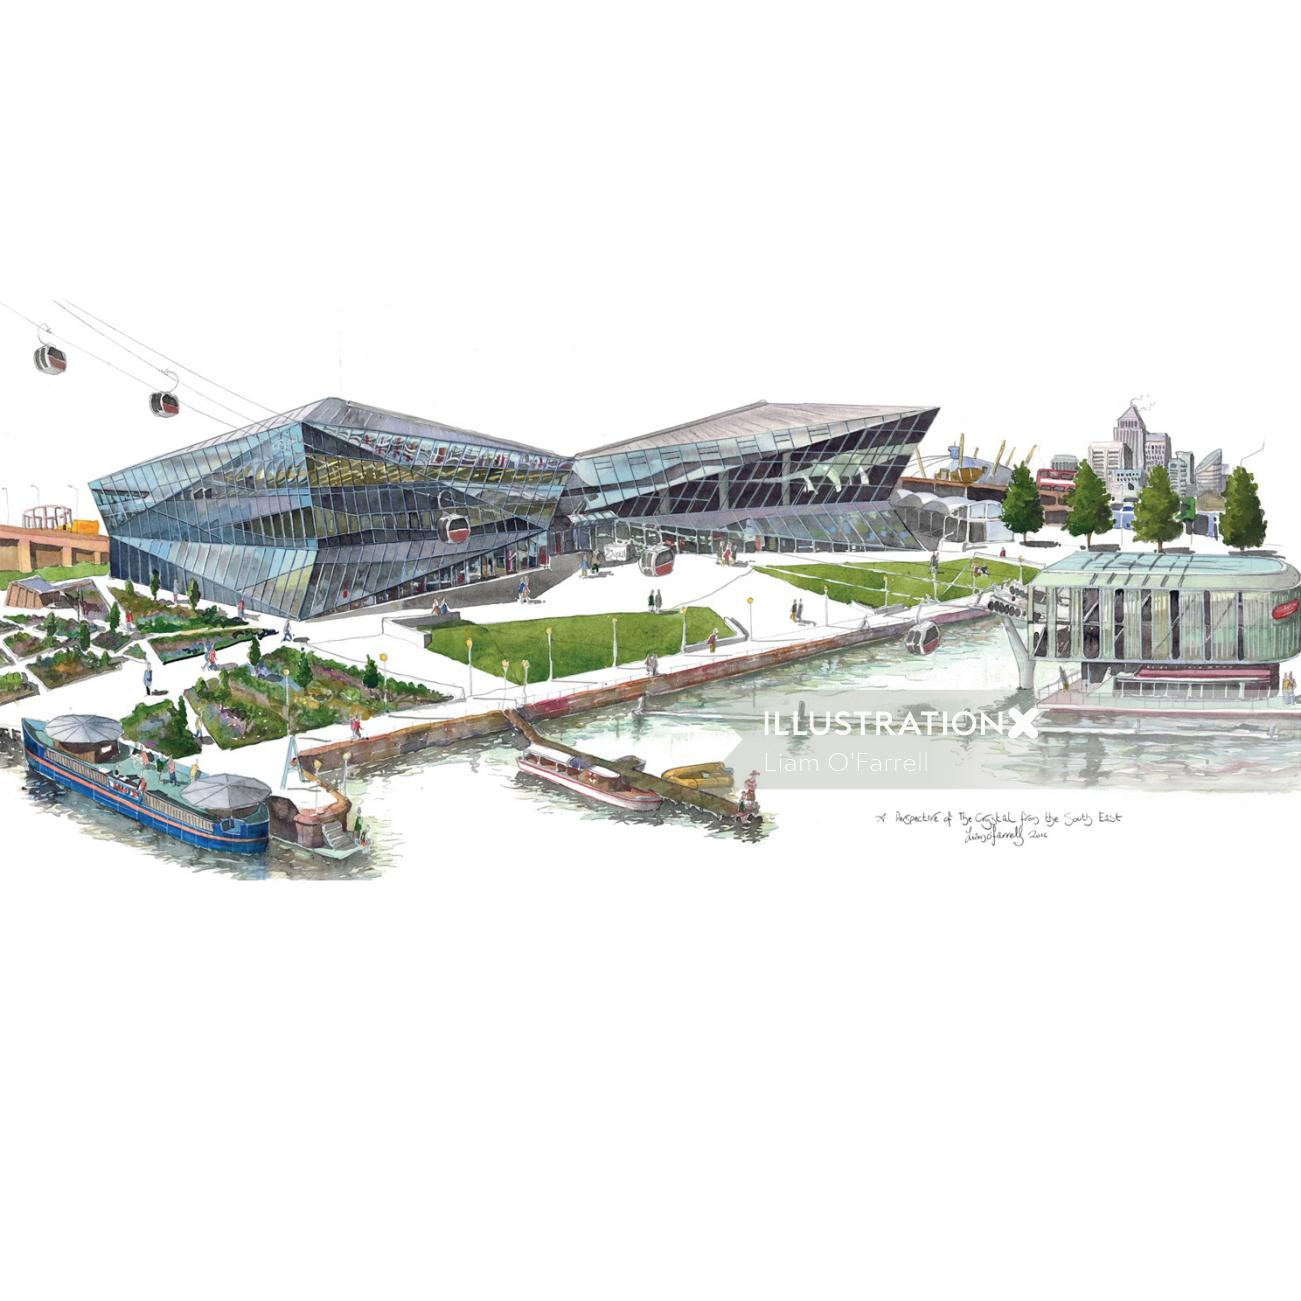 Illustration of the Siemens Crystal in London